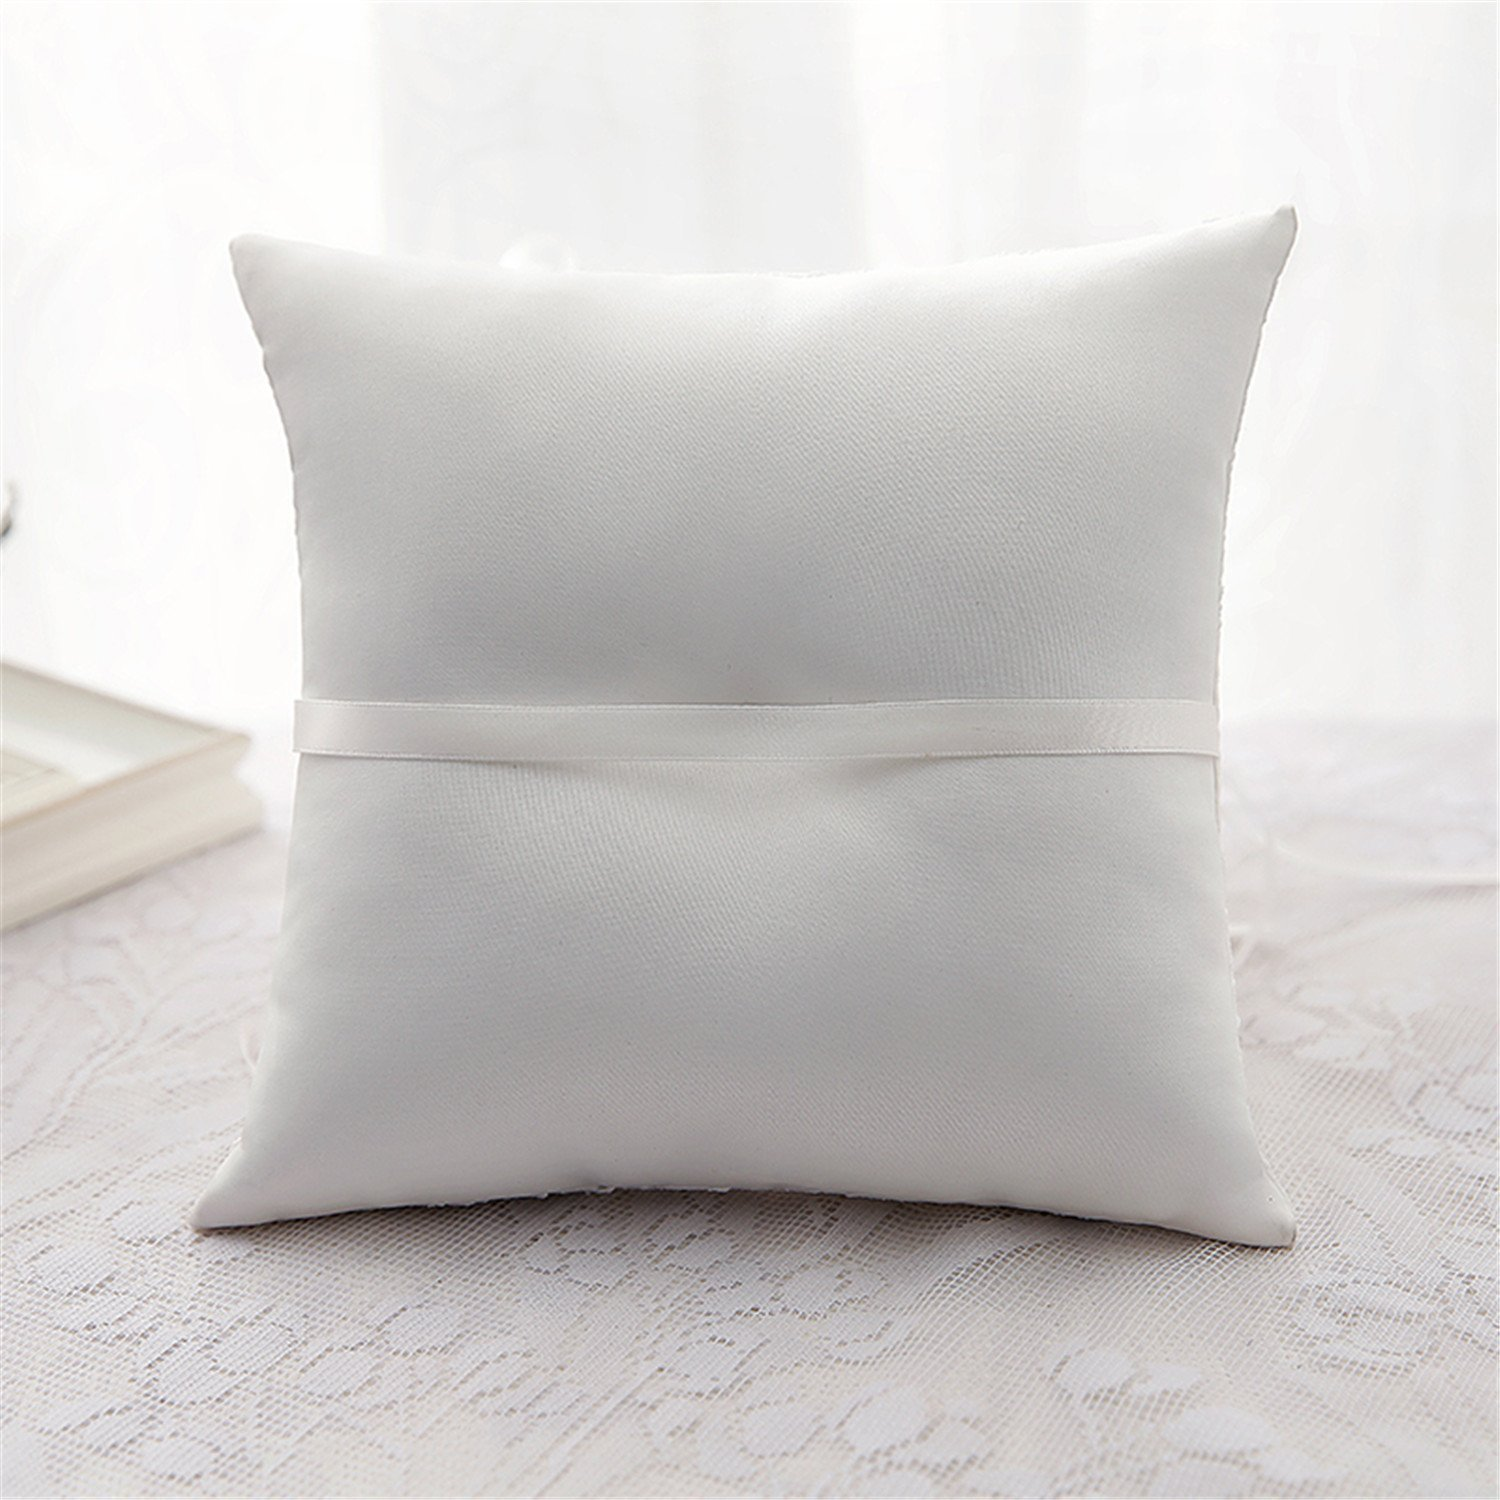 New Trends Lace wedding ring pillow wedding party Supplies wedding Ring Bearer Pillows 8.278.27Inch (Ivory) (R01)